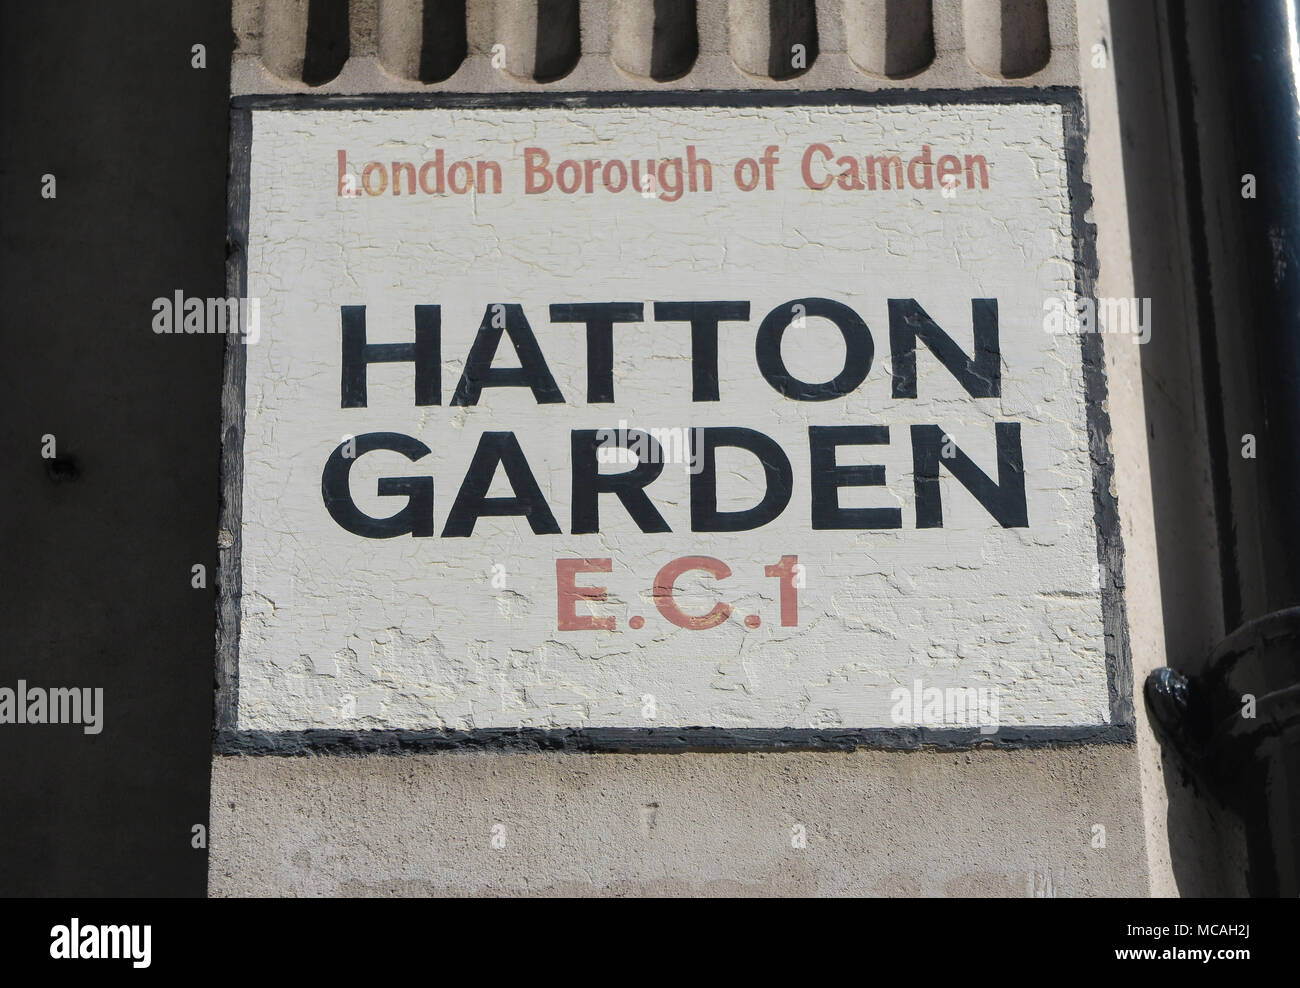 An old, painted traditional sign for London's famous Hatton Garden in London - Stock Image